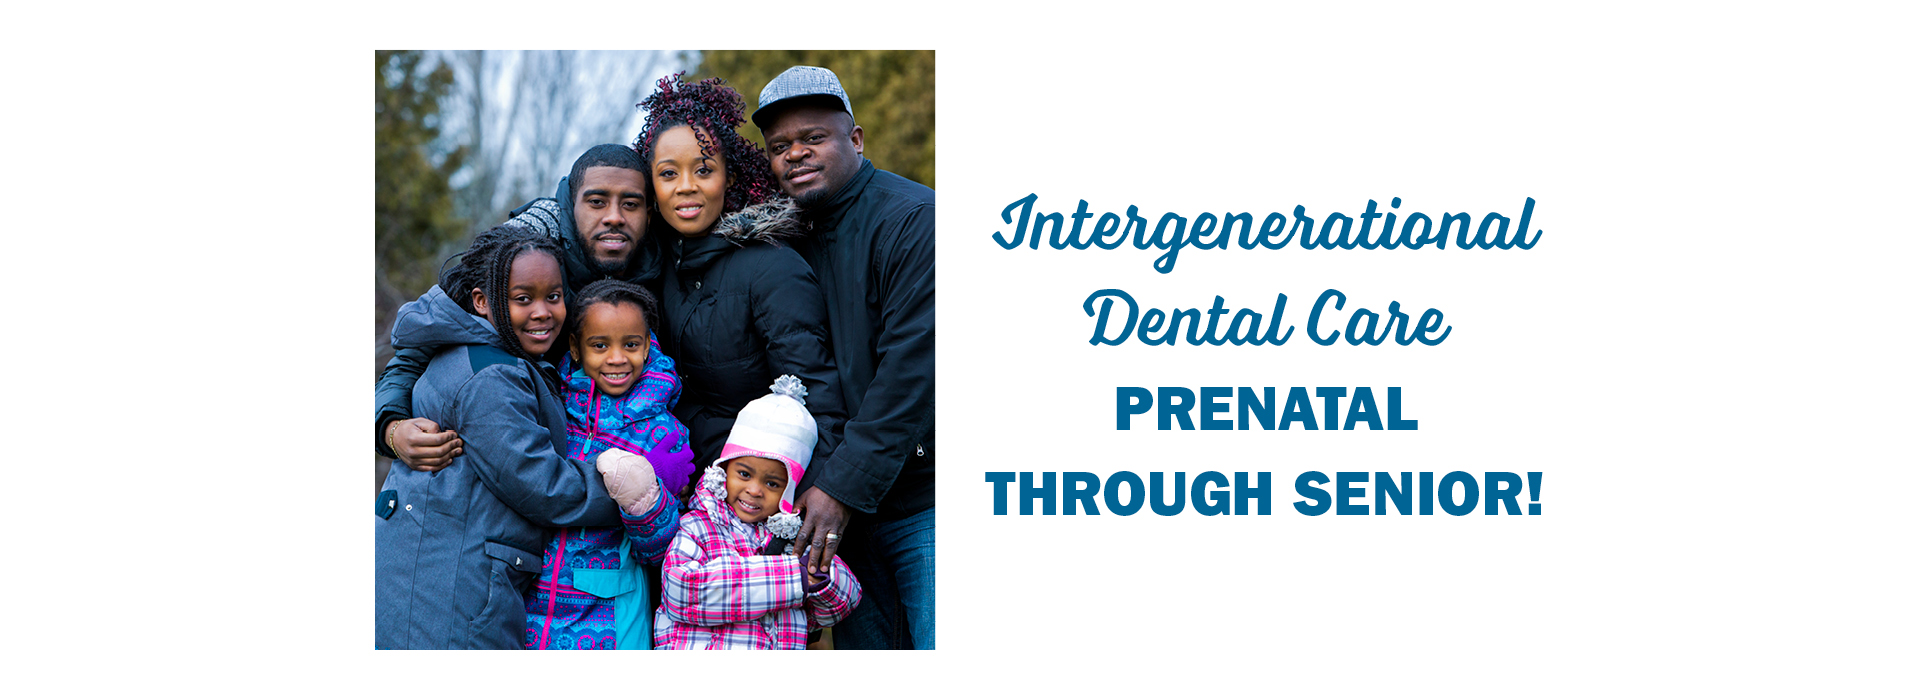 Intergenerational Dental Care